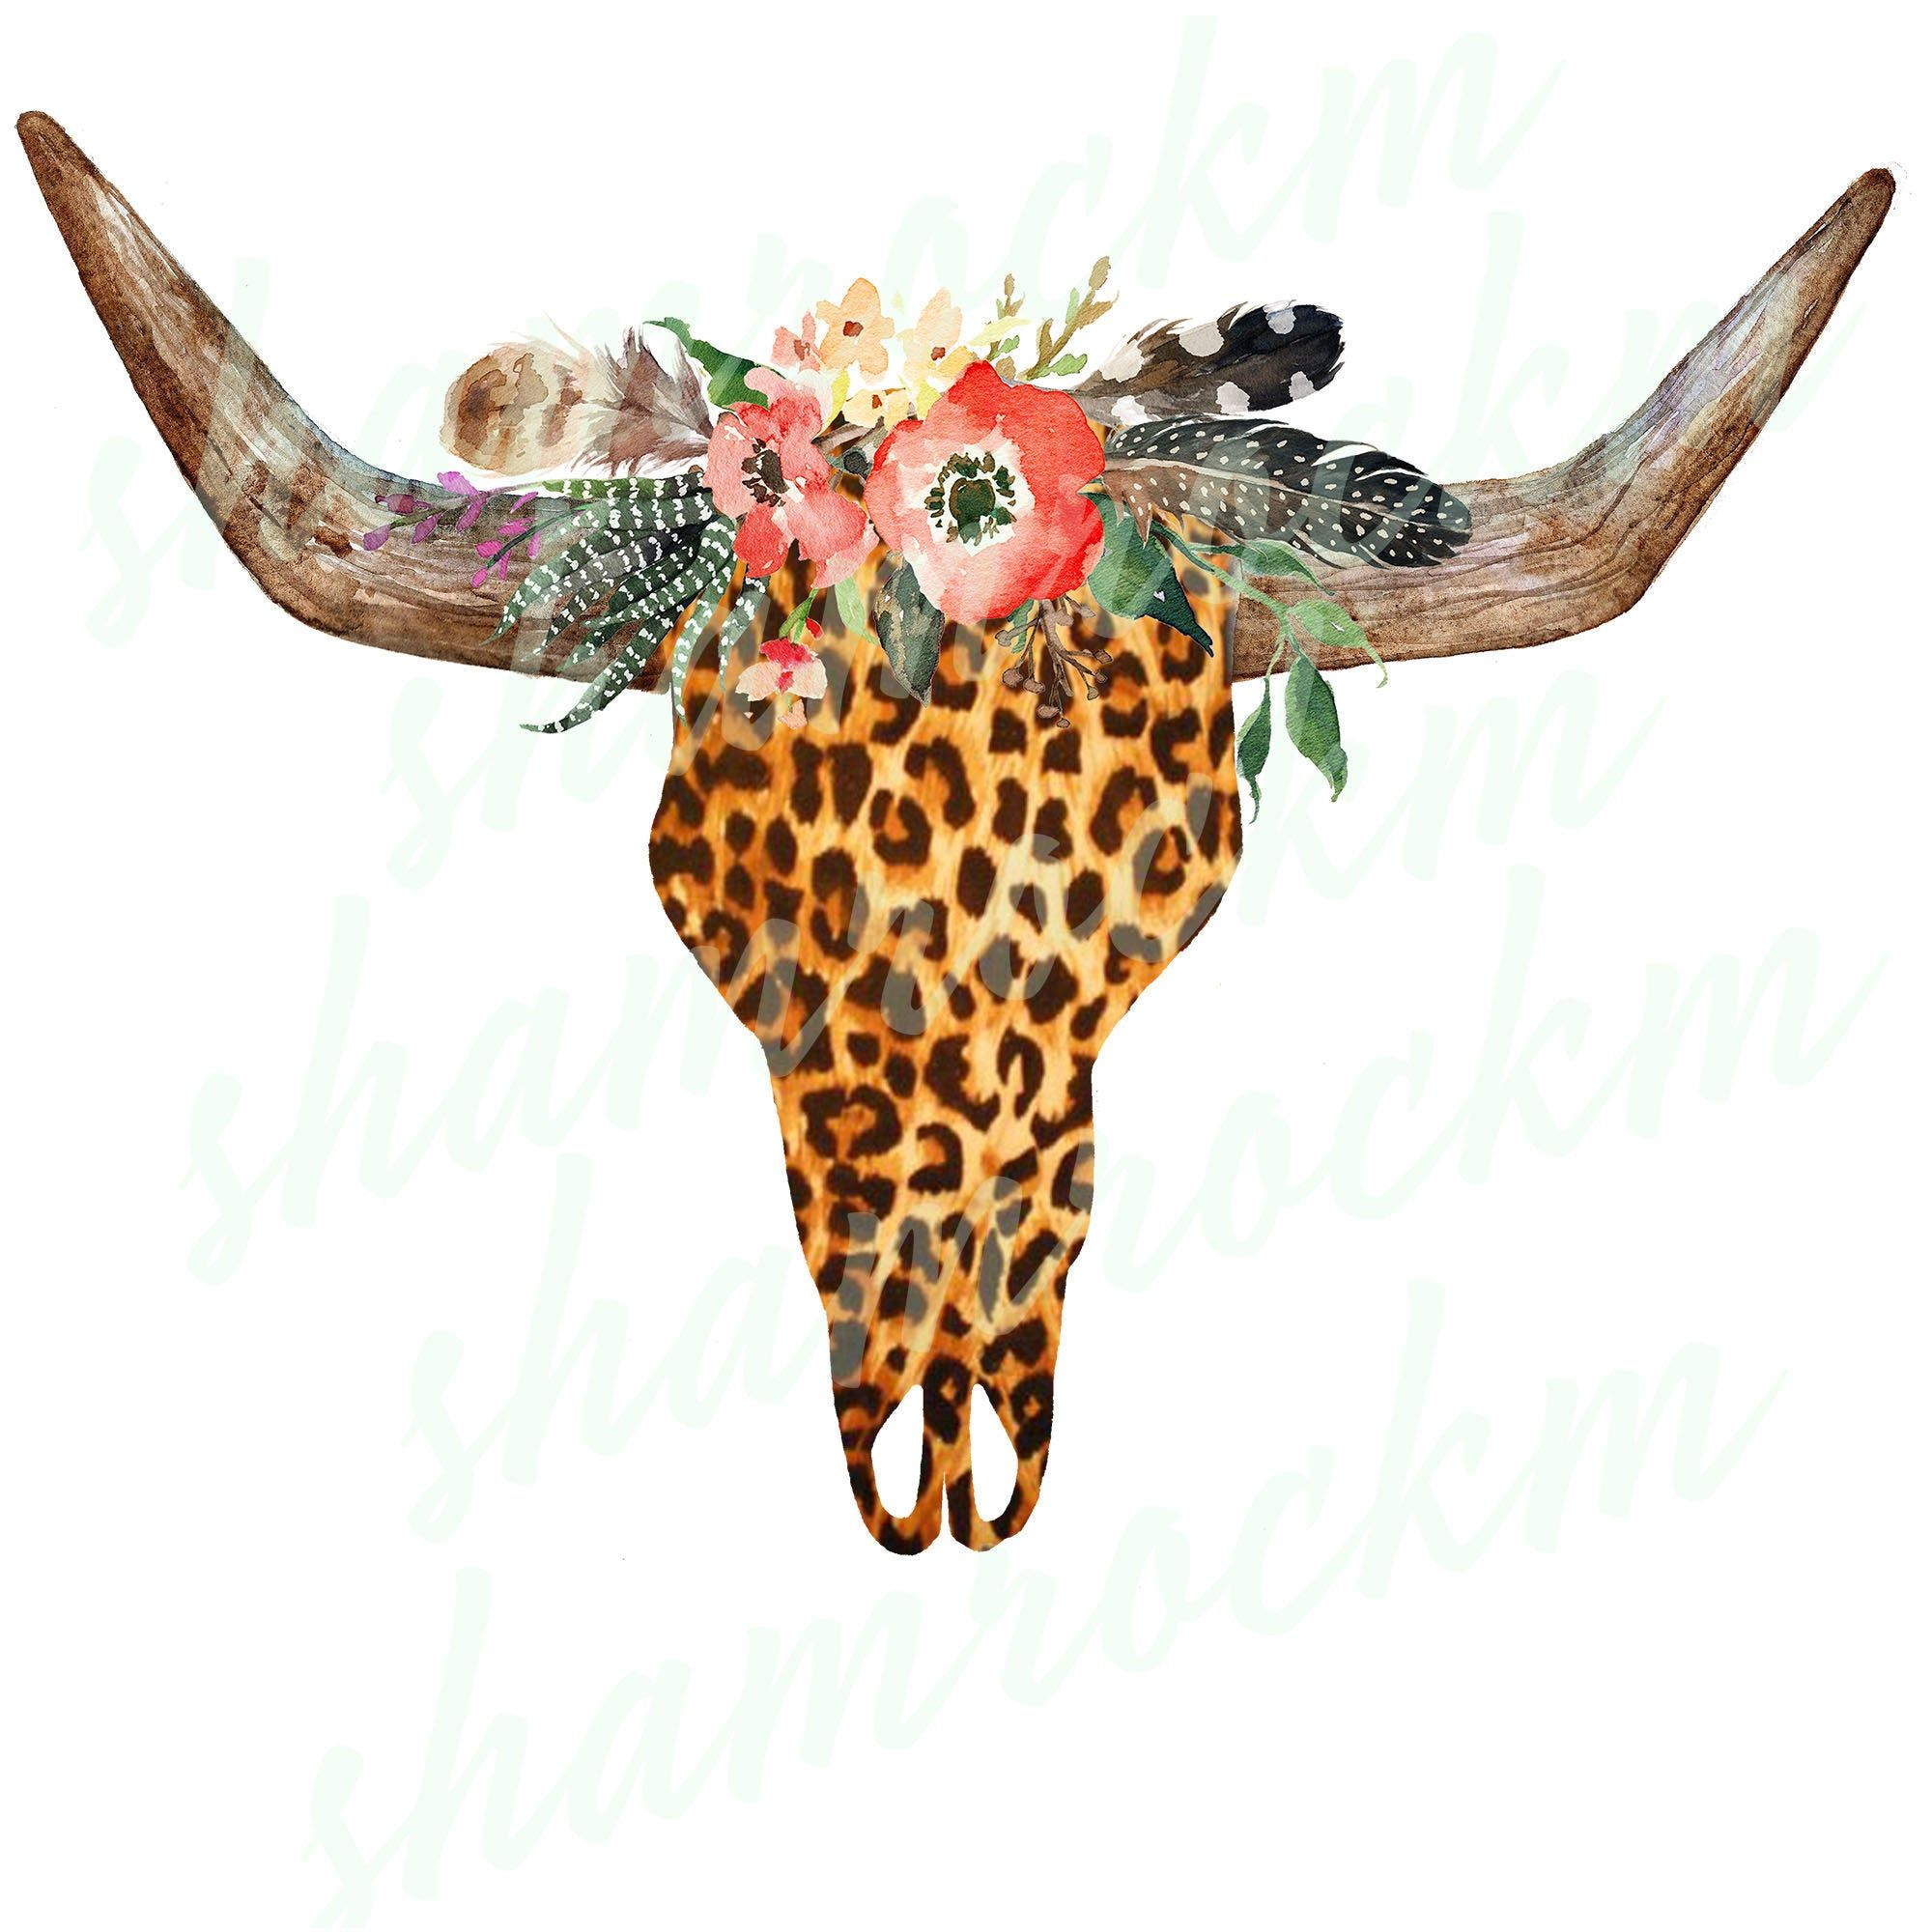 Boho Leopard Steer Skull Png Images With Transparent Background High Resolution 300 Dpi In 2021 Western Wall Art Aztec Pattern Wallpaper Aztec Wallpaper